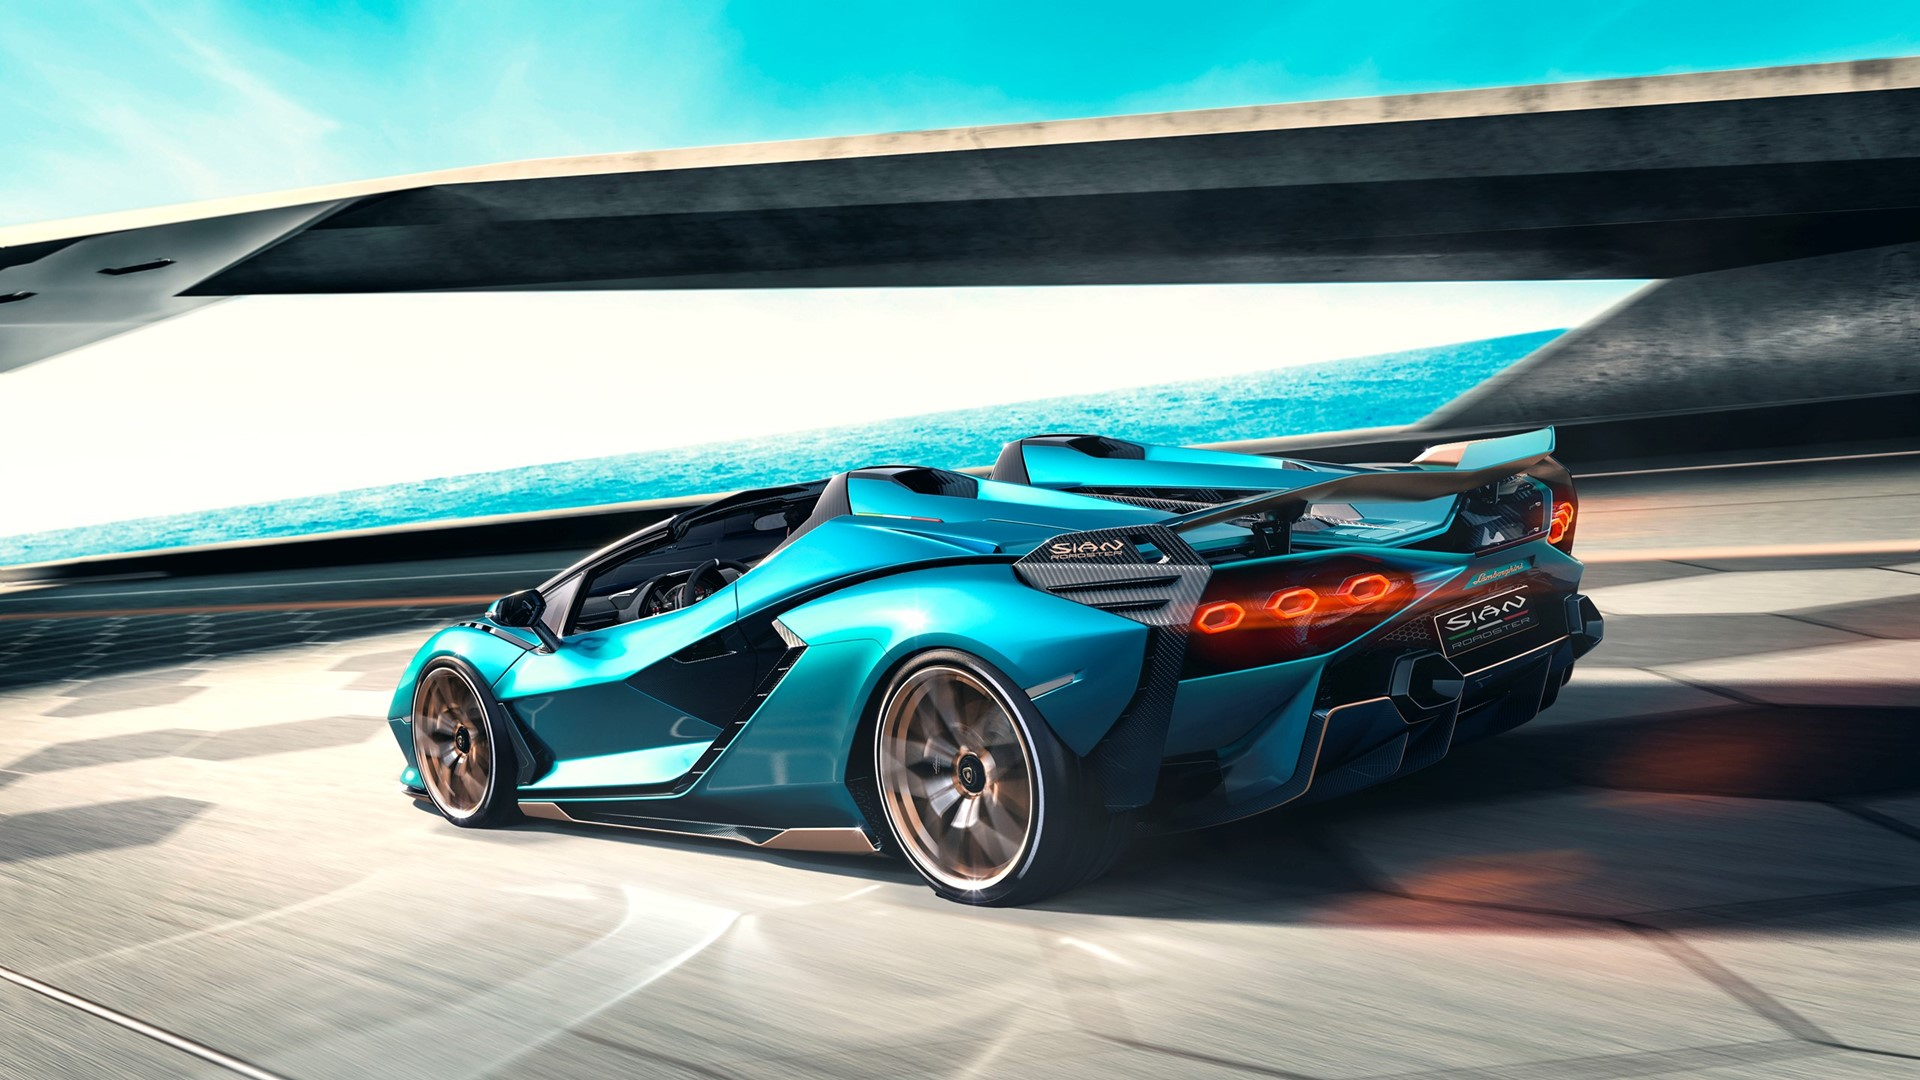 The Lamborghini Sián Roadster: Experience future technology under open skies - Image 5